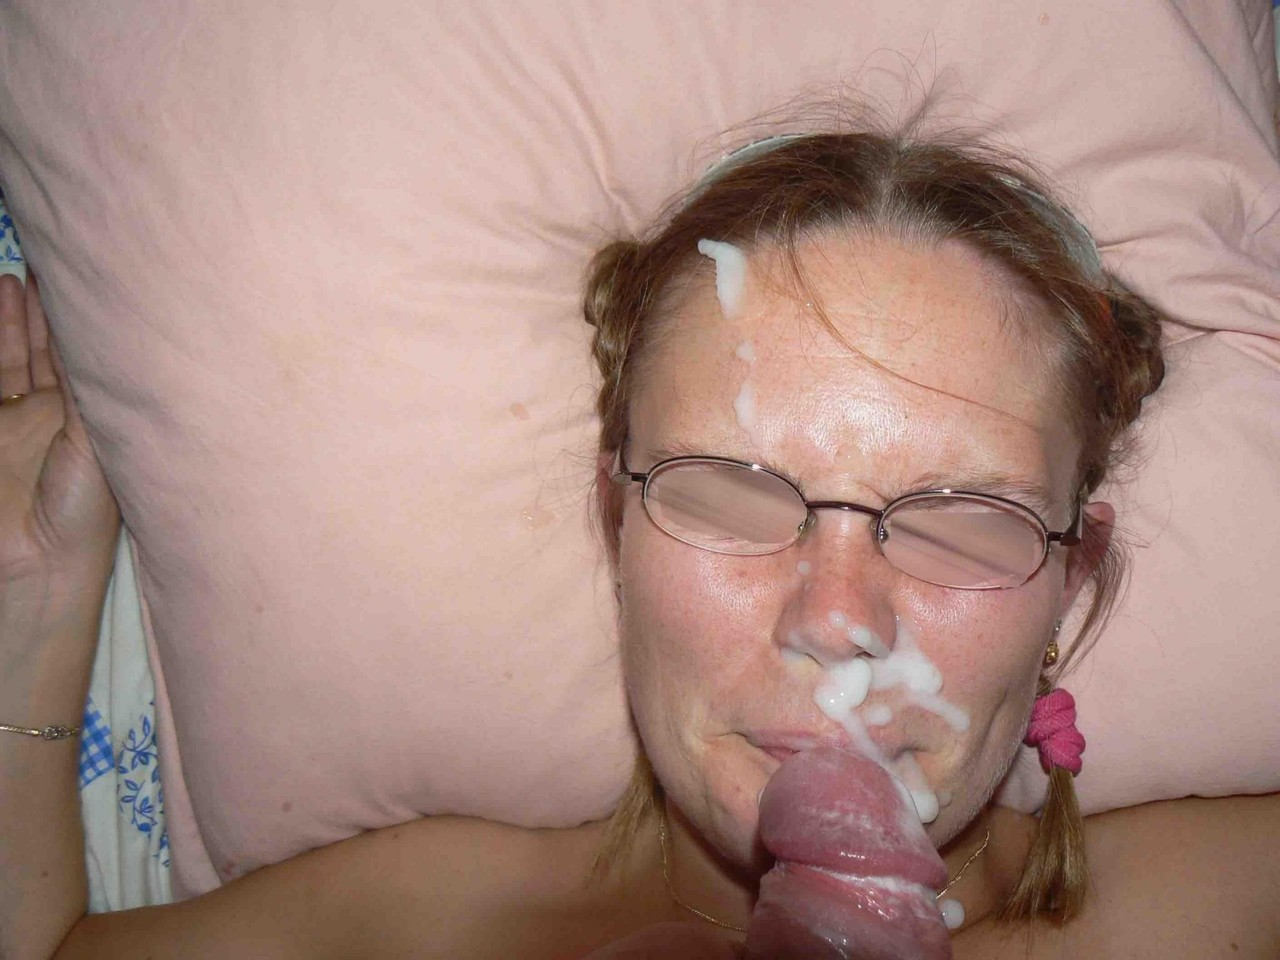 Facial cum amateur movie free homemade